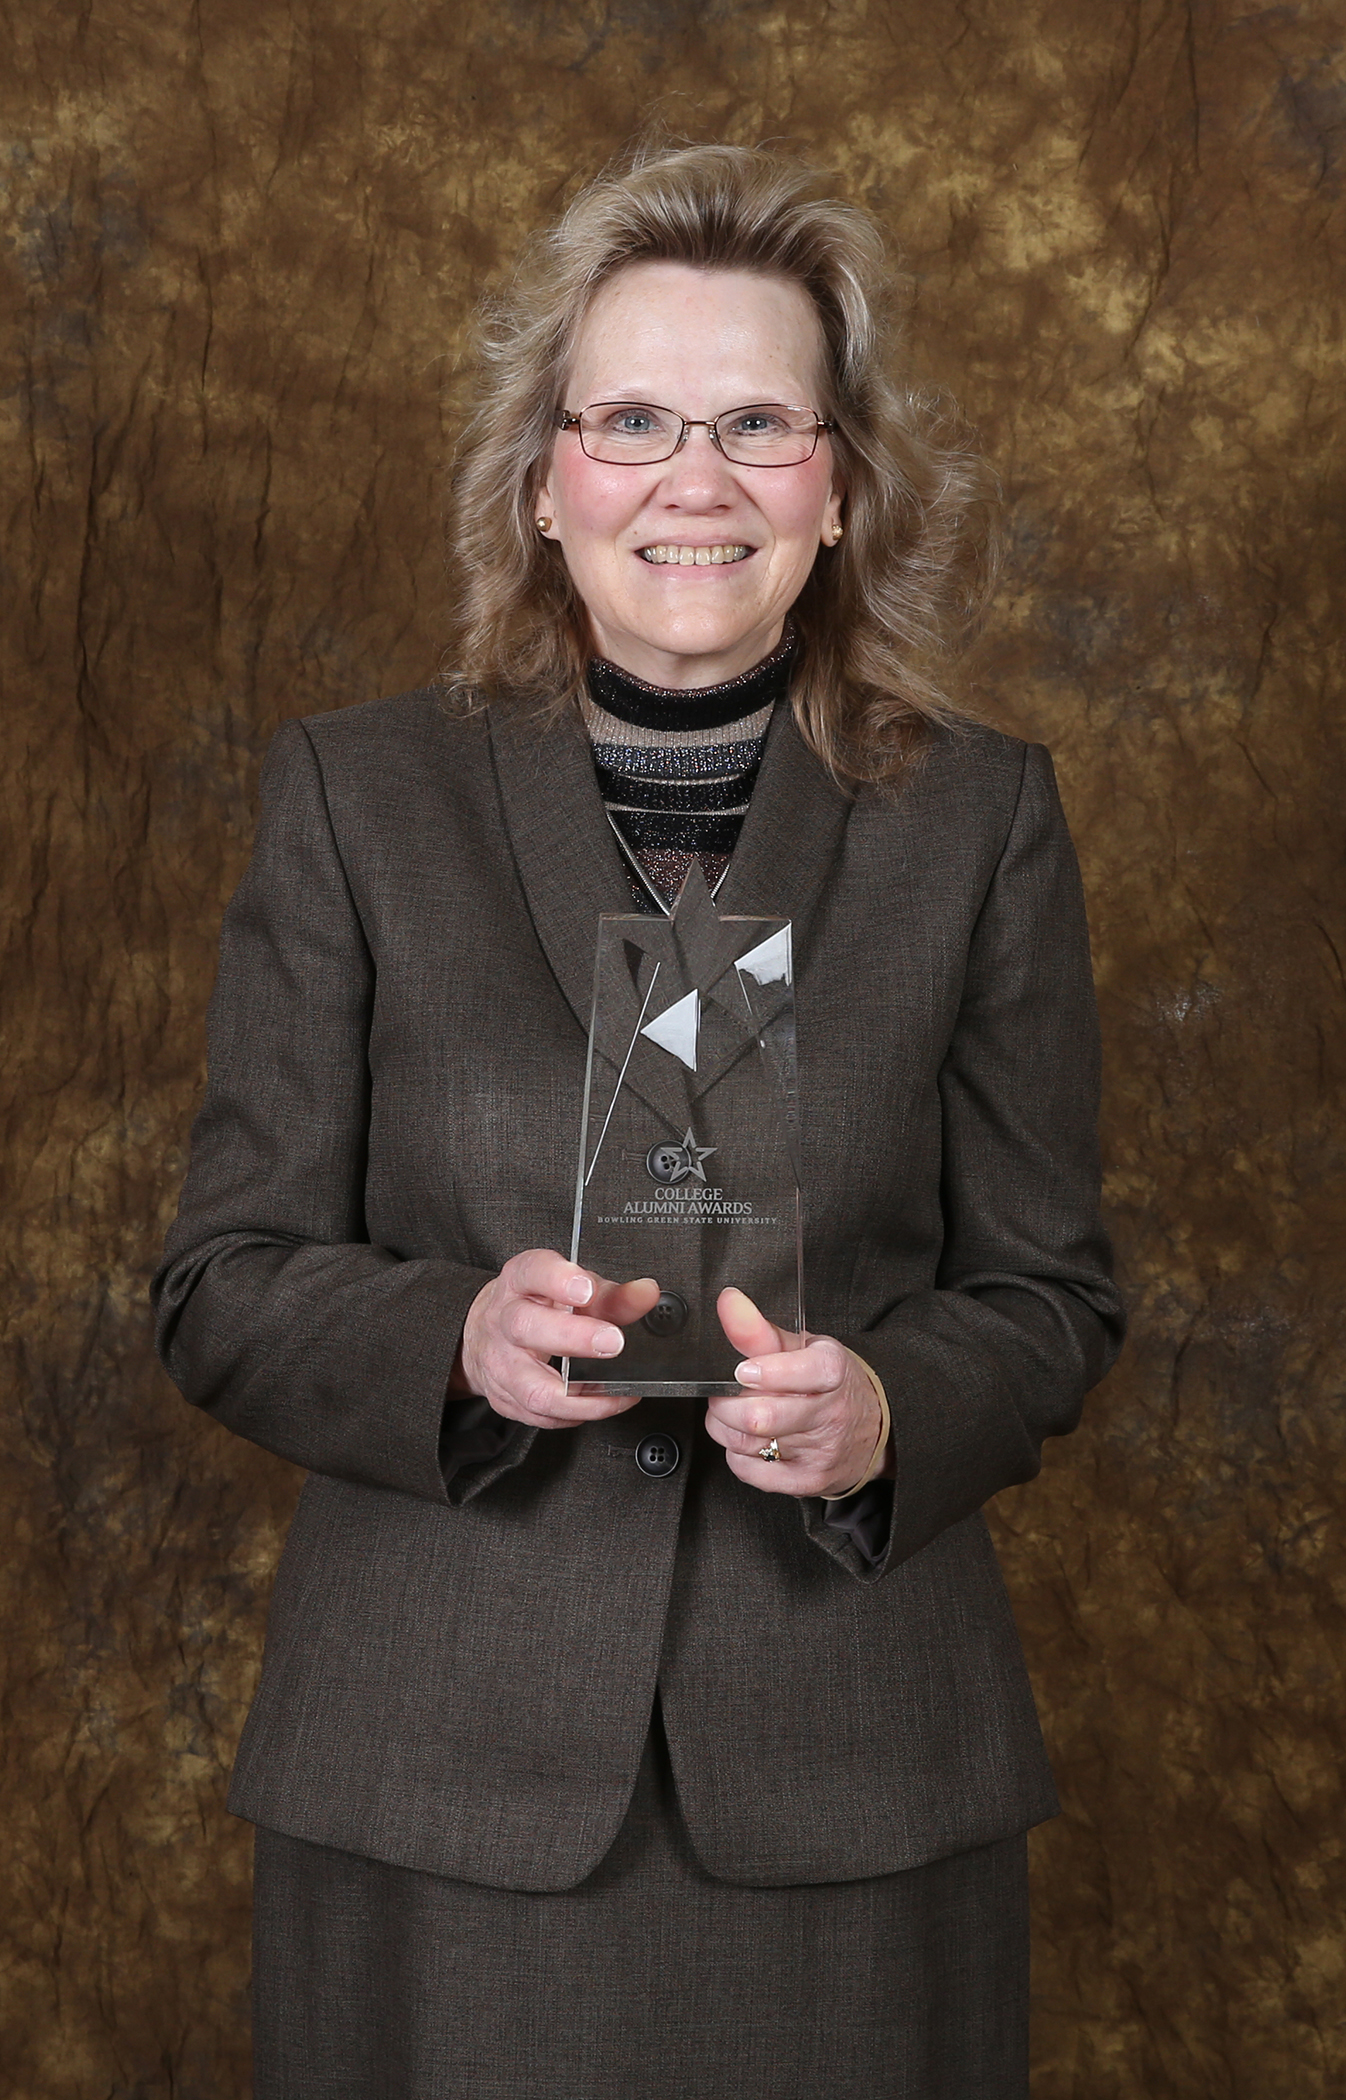 Image of Susan Wajert with award